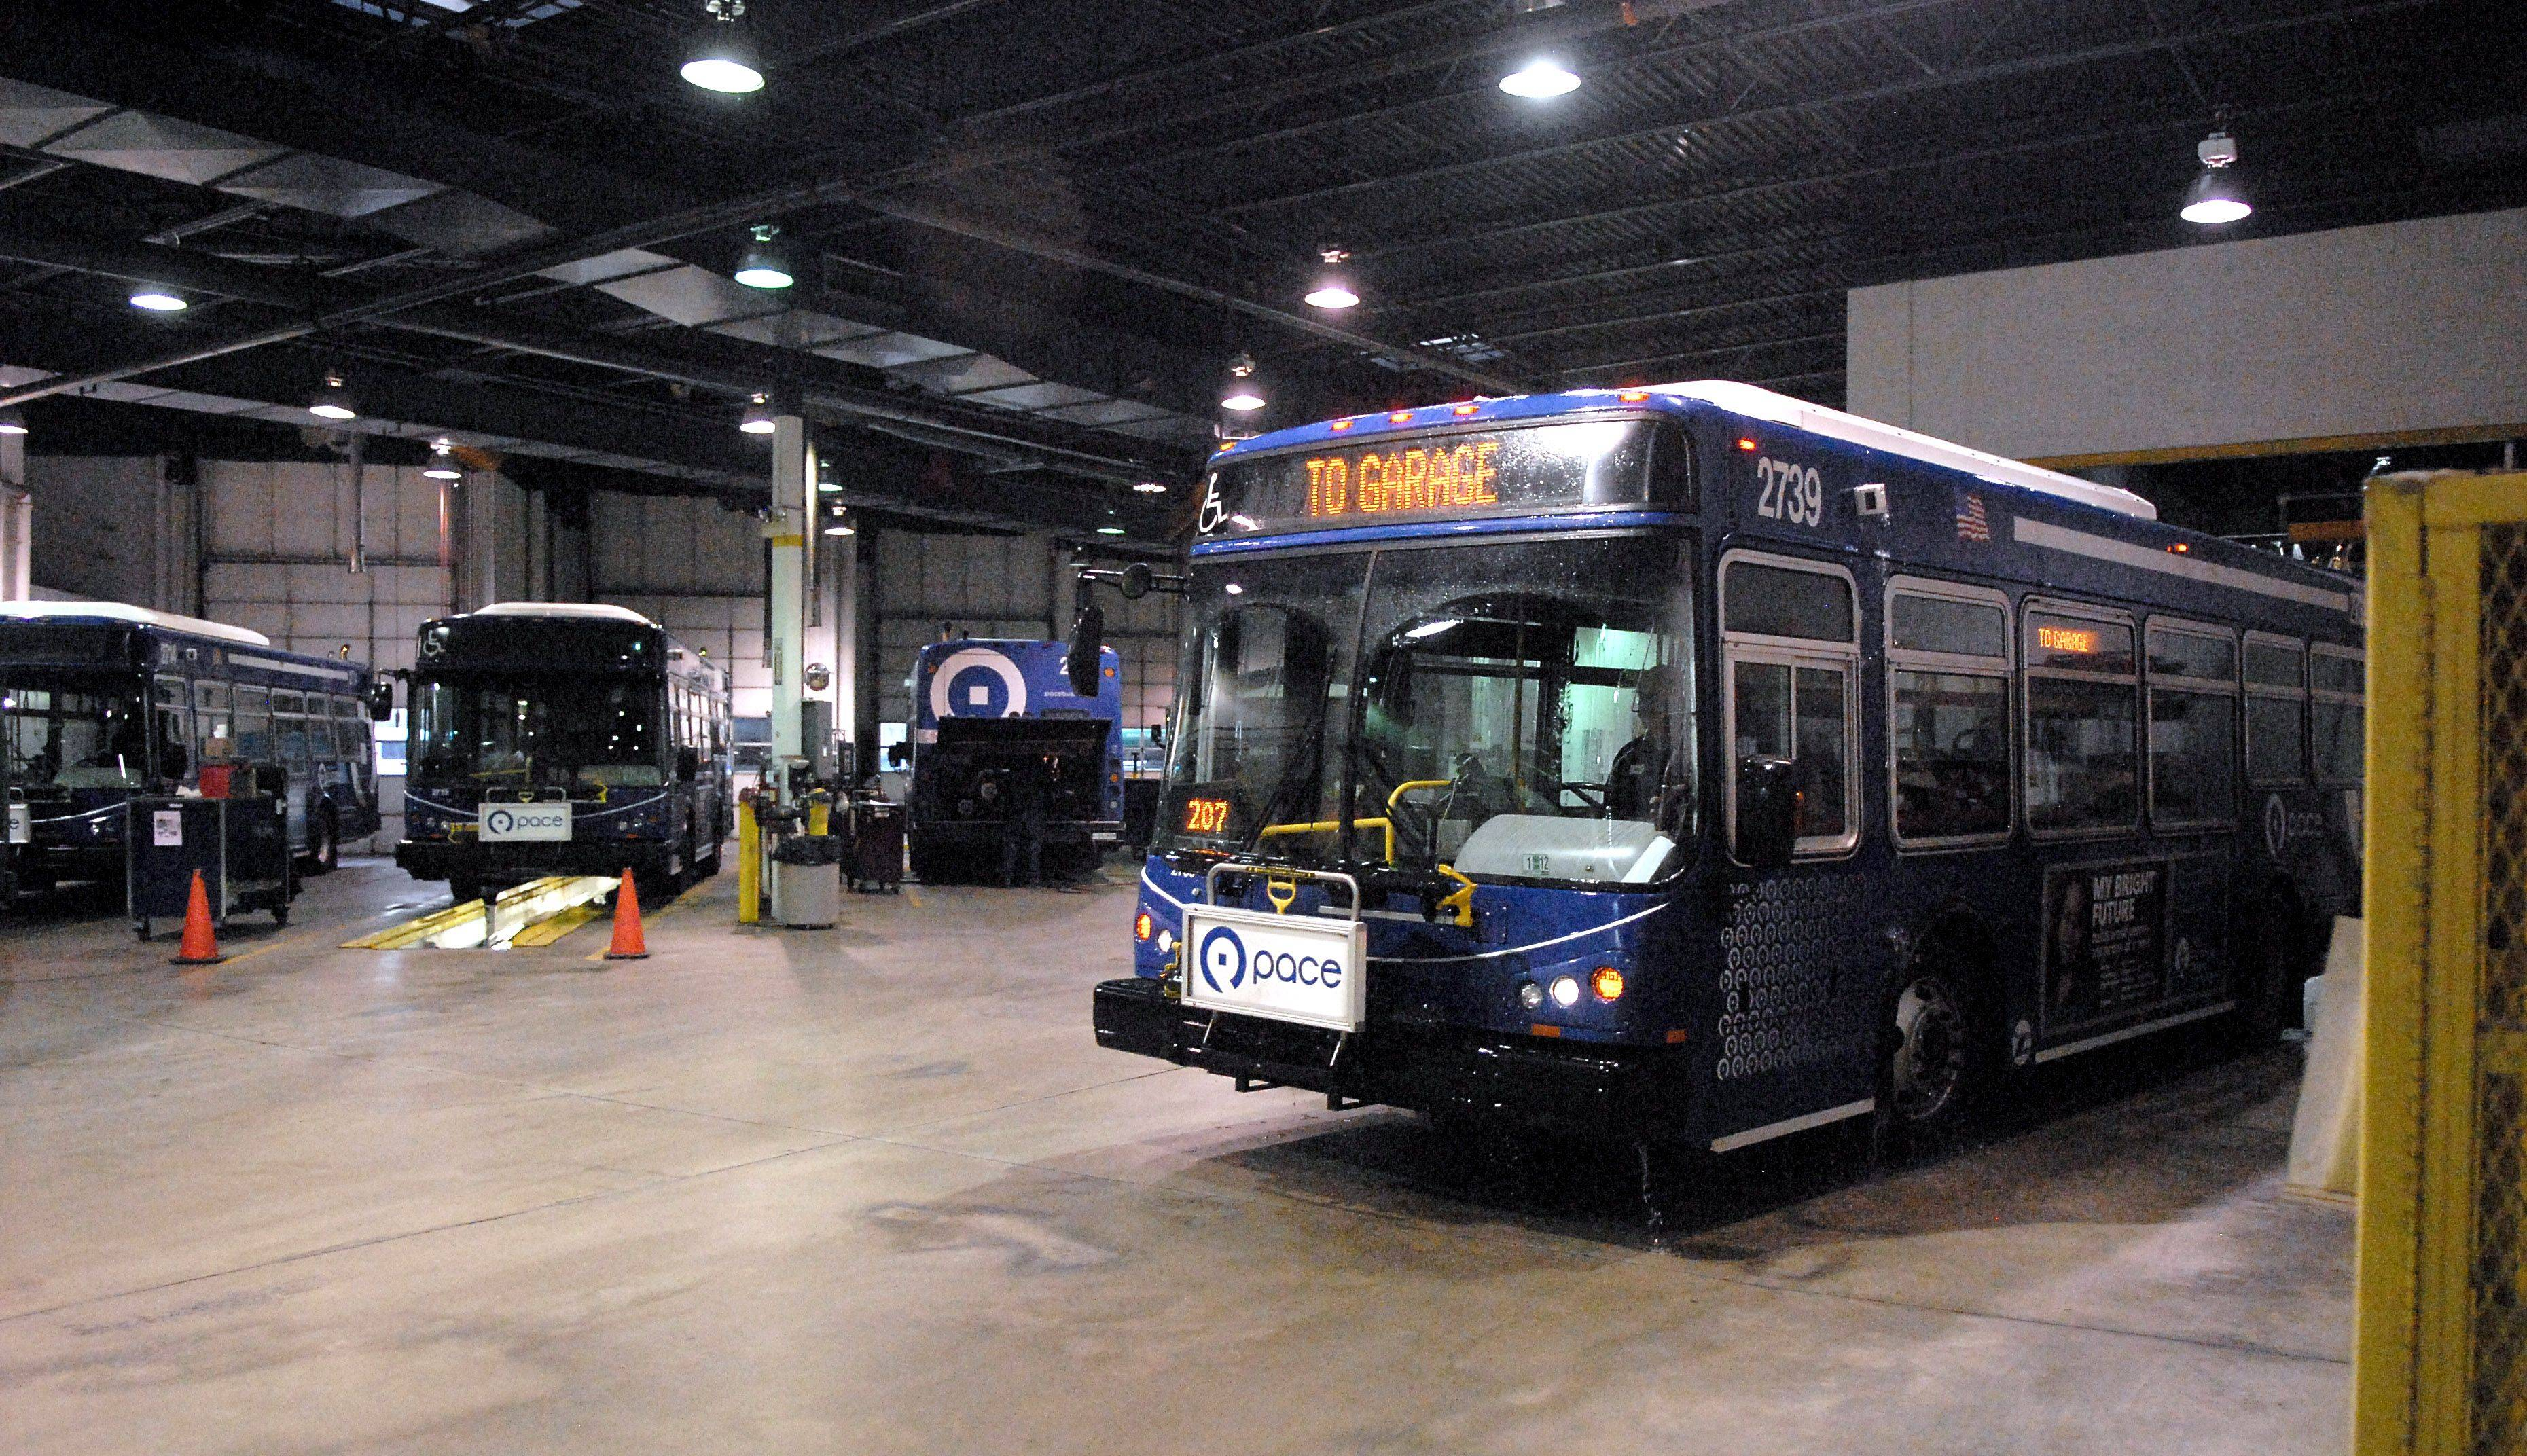 A bus drives out of the washing station past five maintenance bays in the Elgin Pace bus garage. After being refueled, the bus is put through the wash and then parked in the adjoining space ready to go for its next shift in the morning.